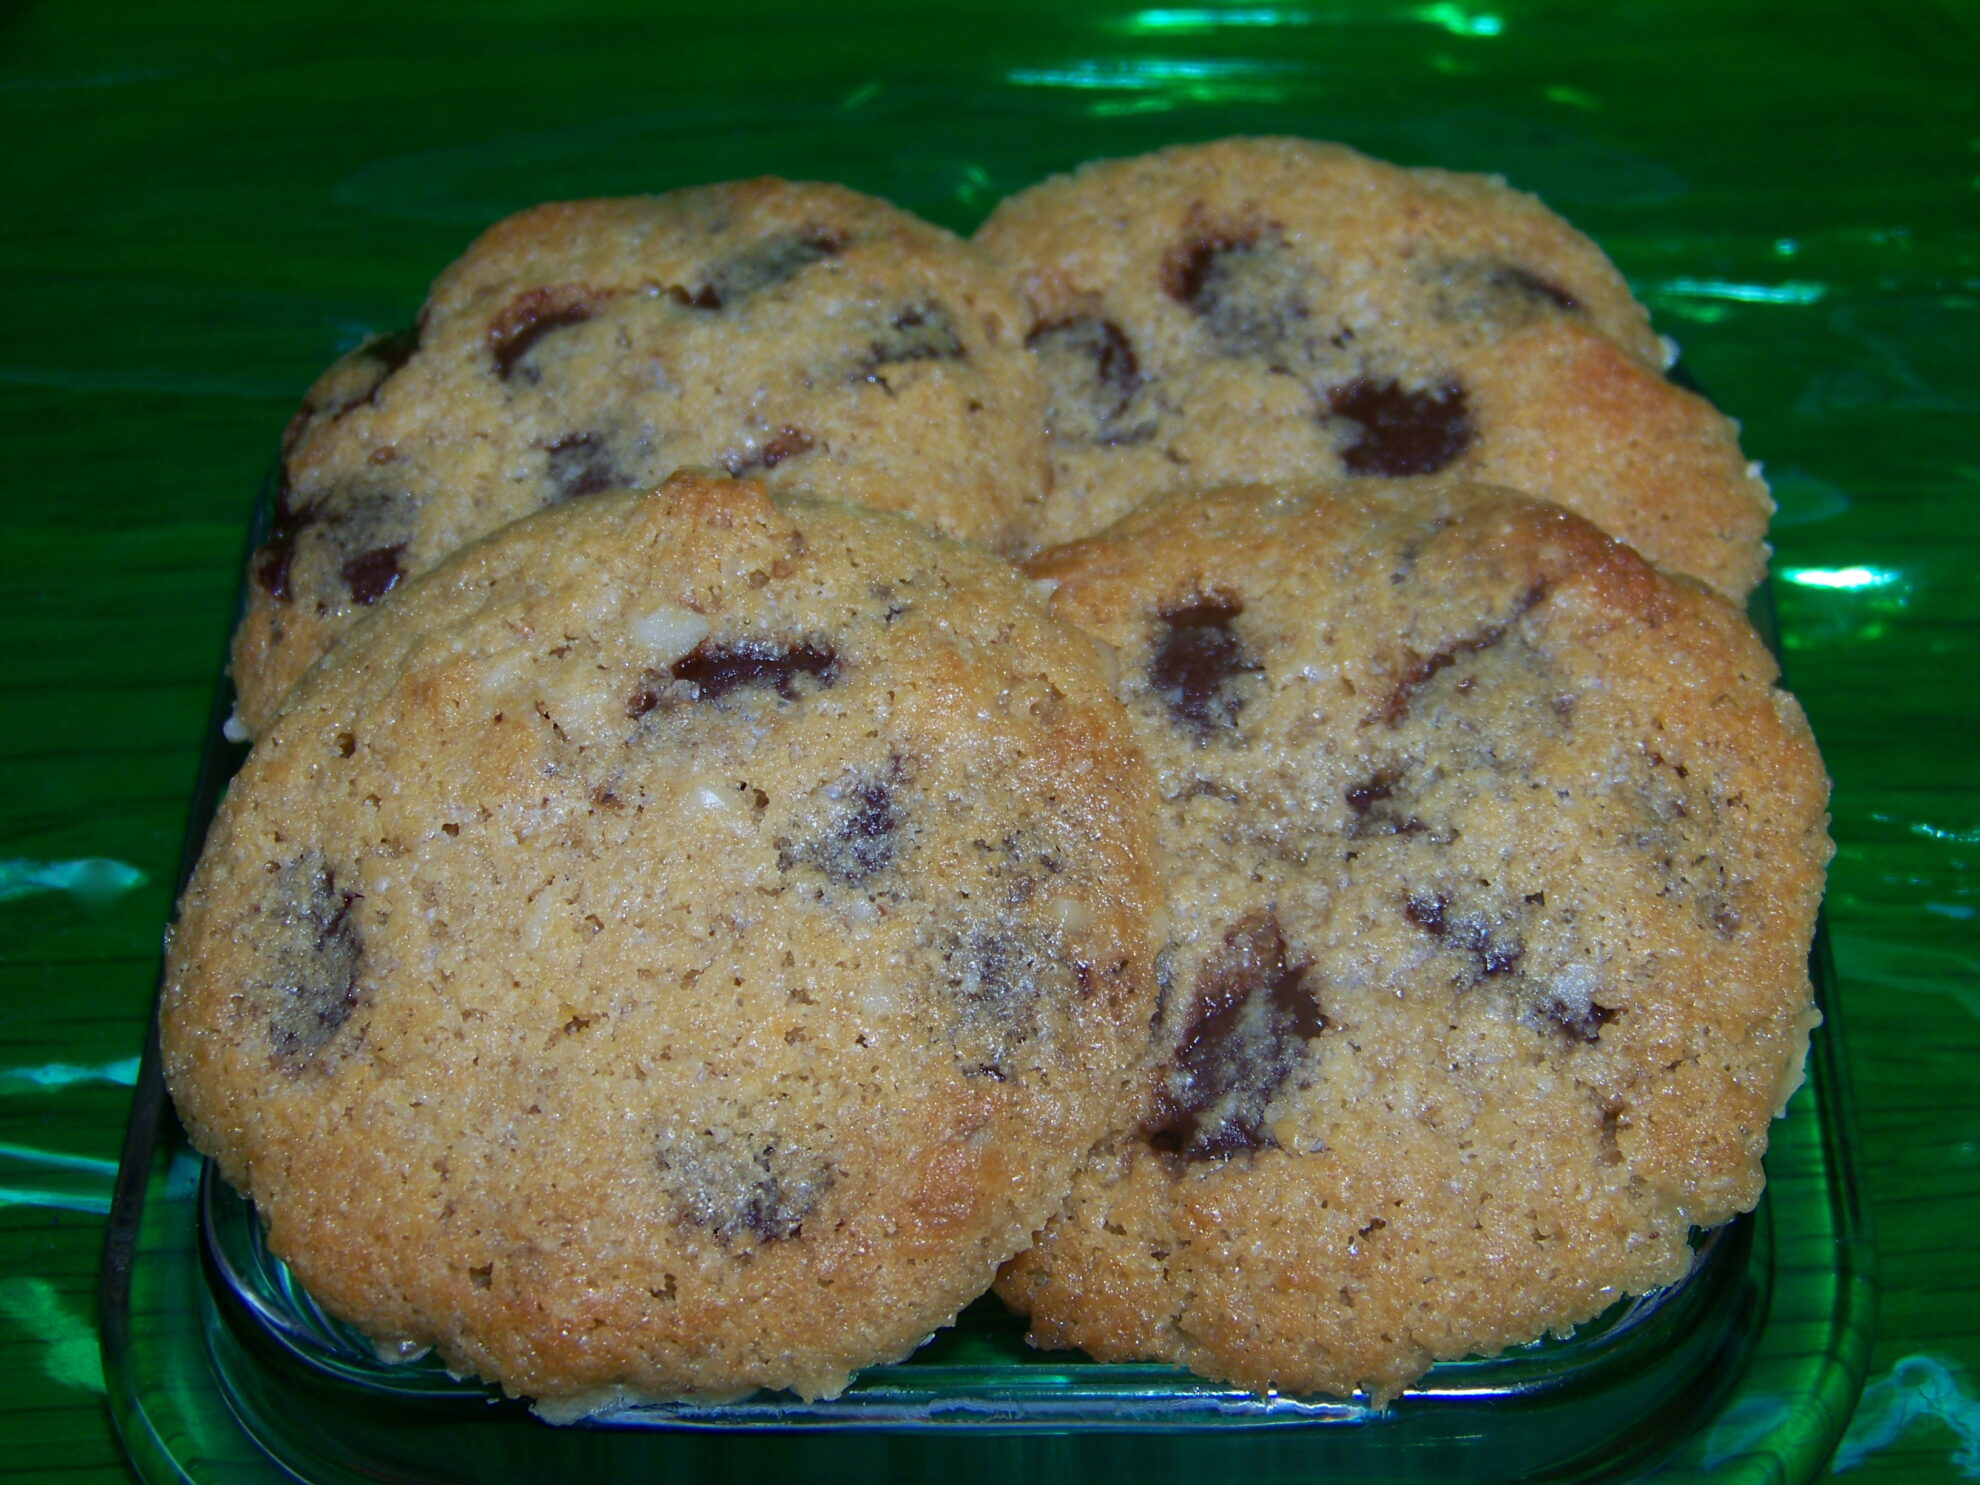 Carbs in chocolate chip cookie